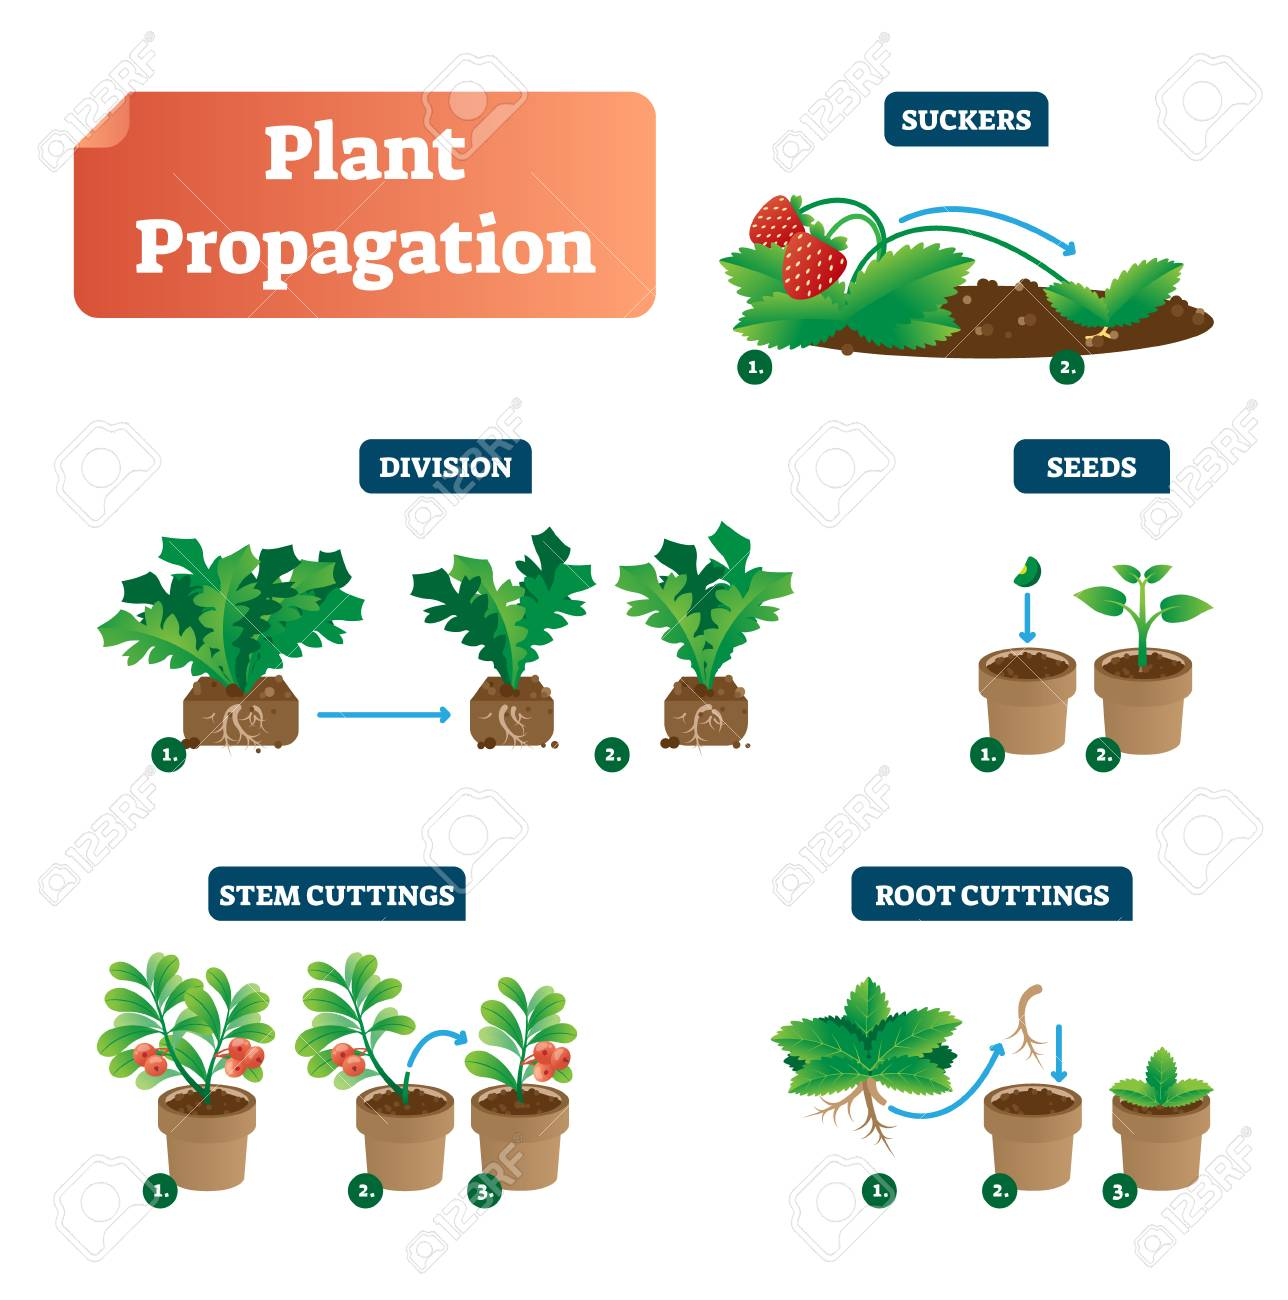 Plant Propagation Vector Illustration Diagram. Scheme With Labels.. Royalty  Free Cliparts, Vectors, And Stock Illustration. Image 114774596.123RF